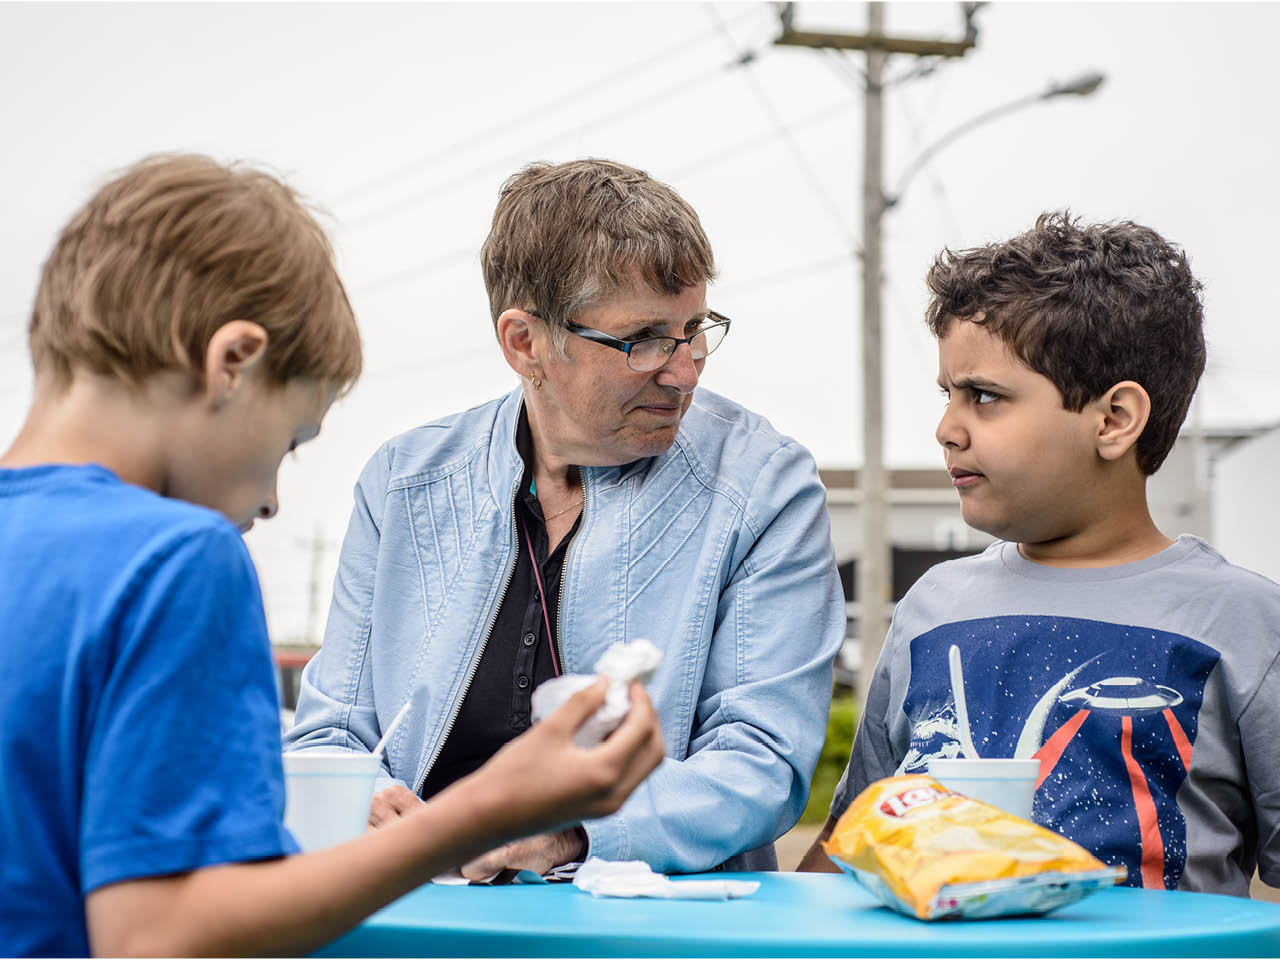 Autism Town - Gallery Image 2 - Issac and Elyas eating with Joan Chiasson